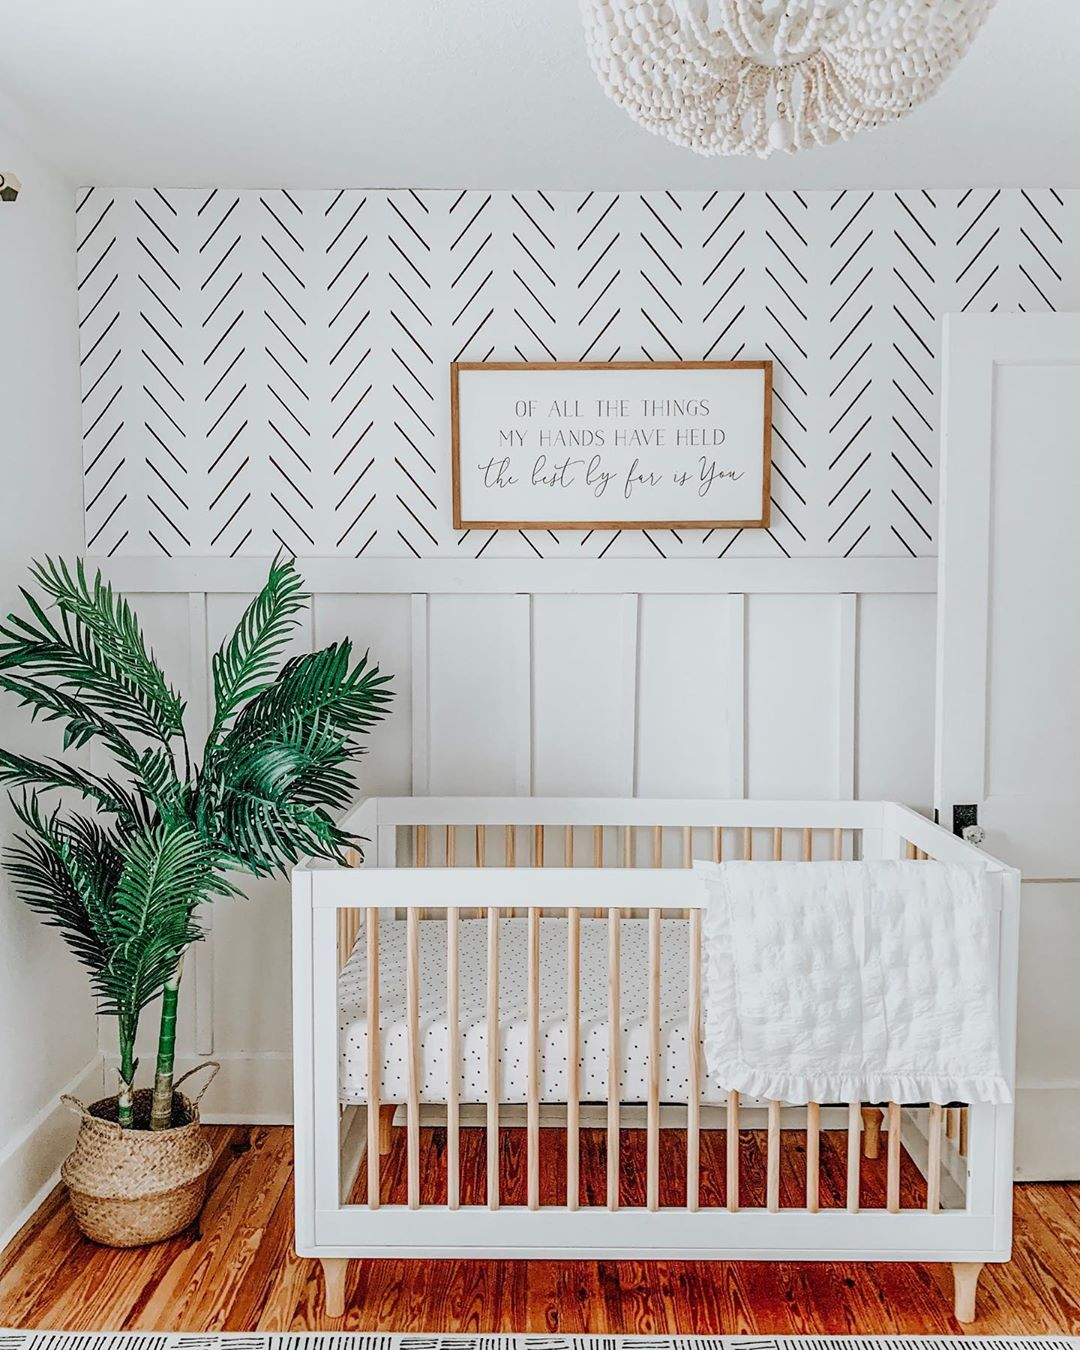 White mid century modern nursery with herringbone removable wallpaper and lush greenery decor